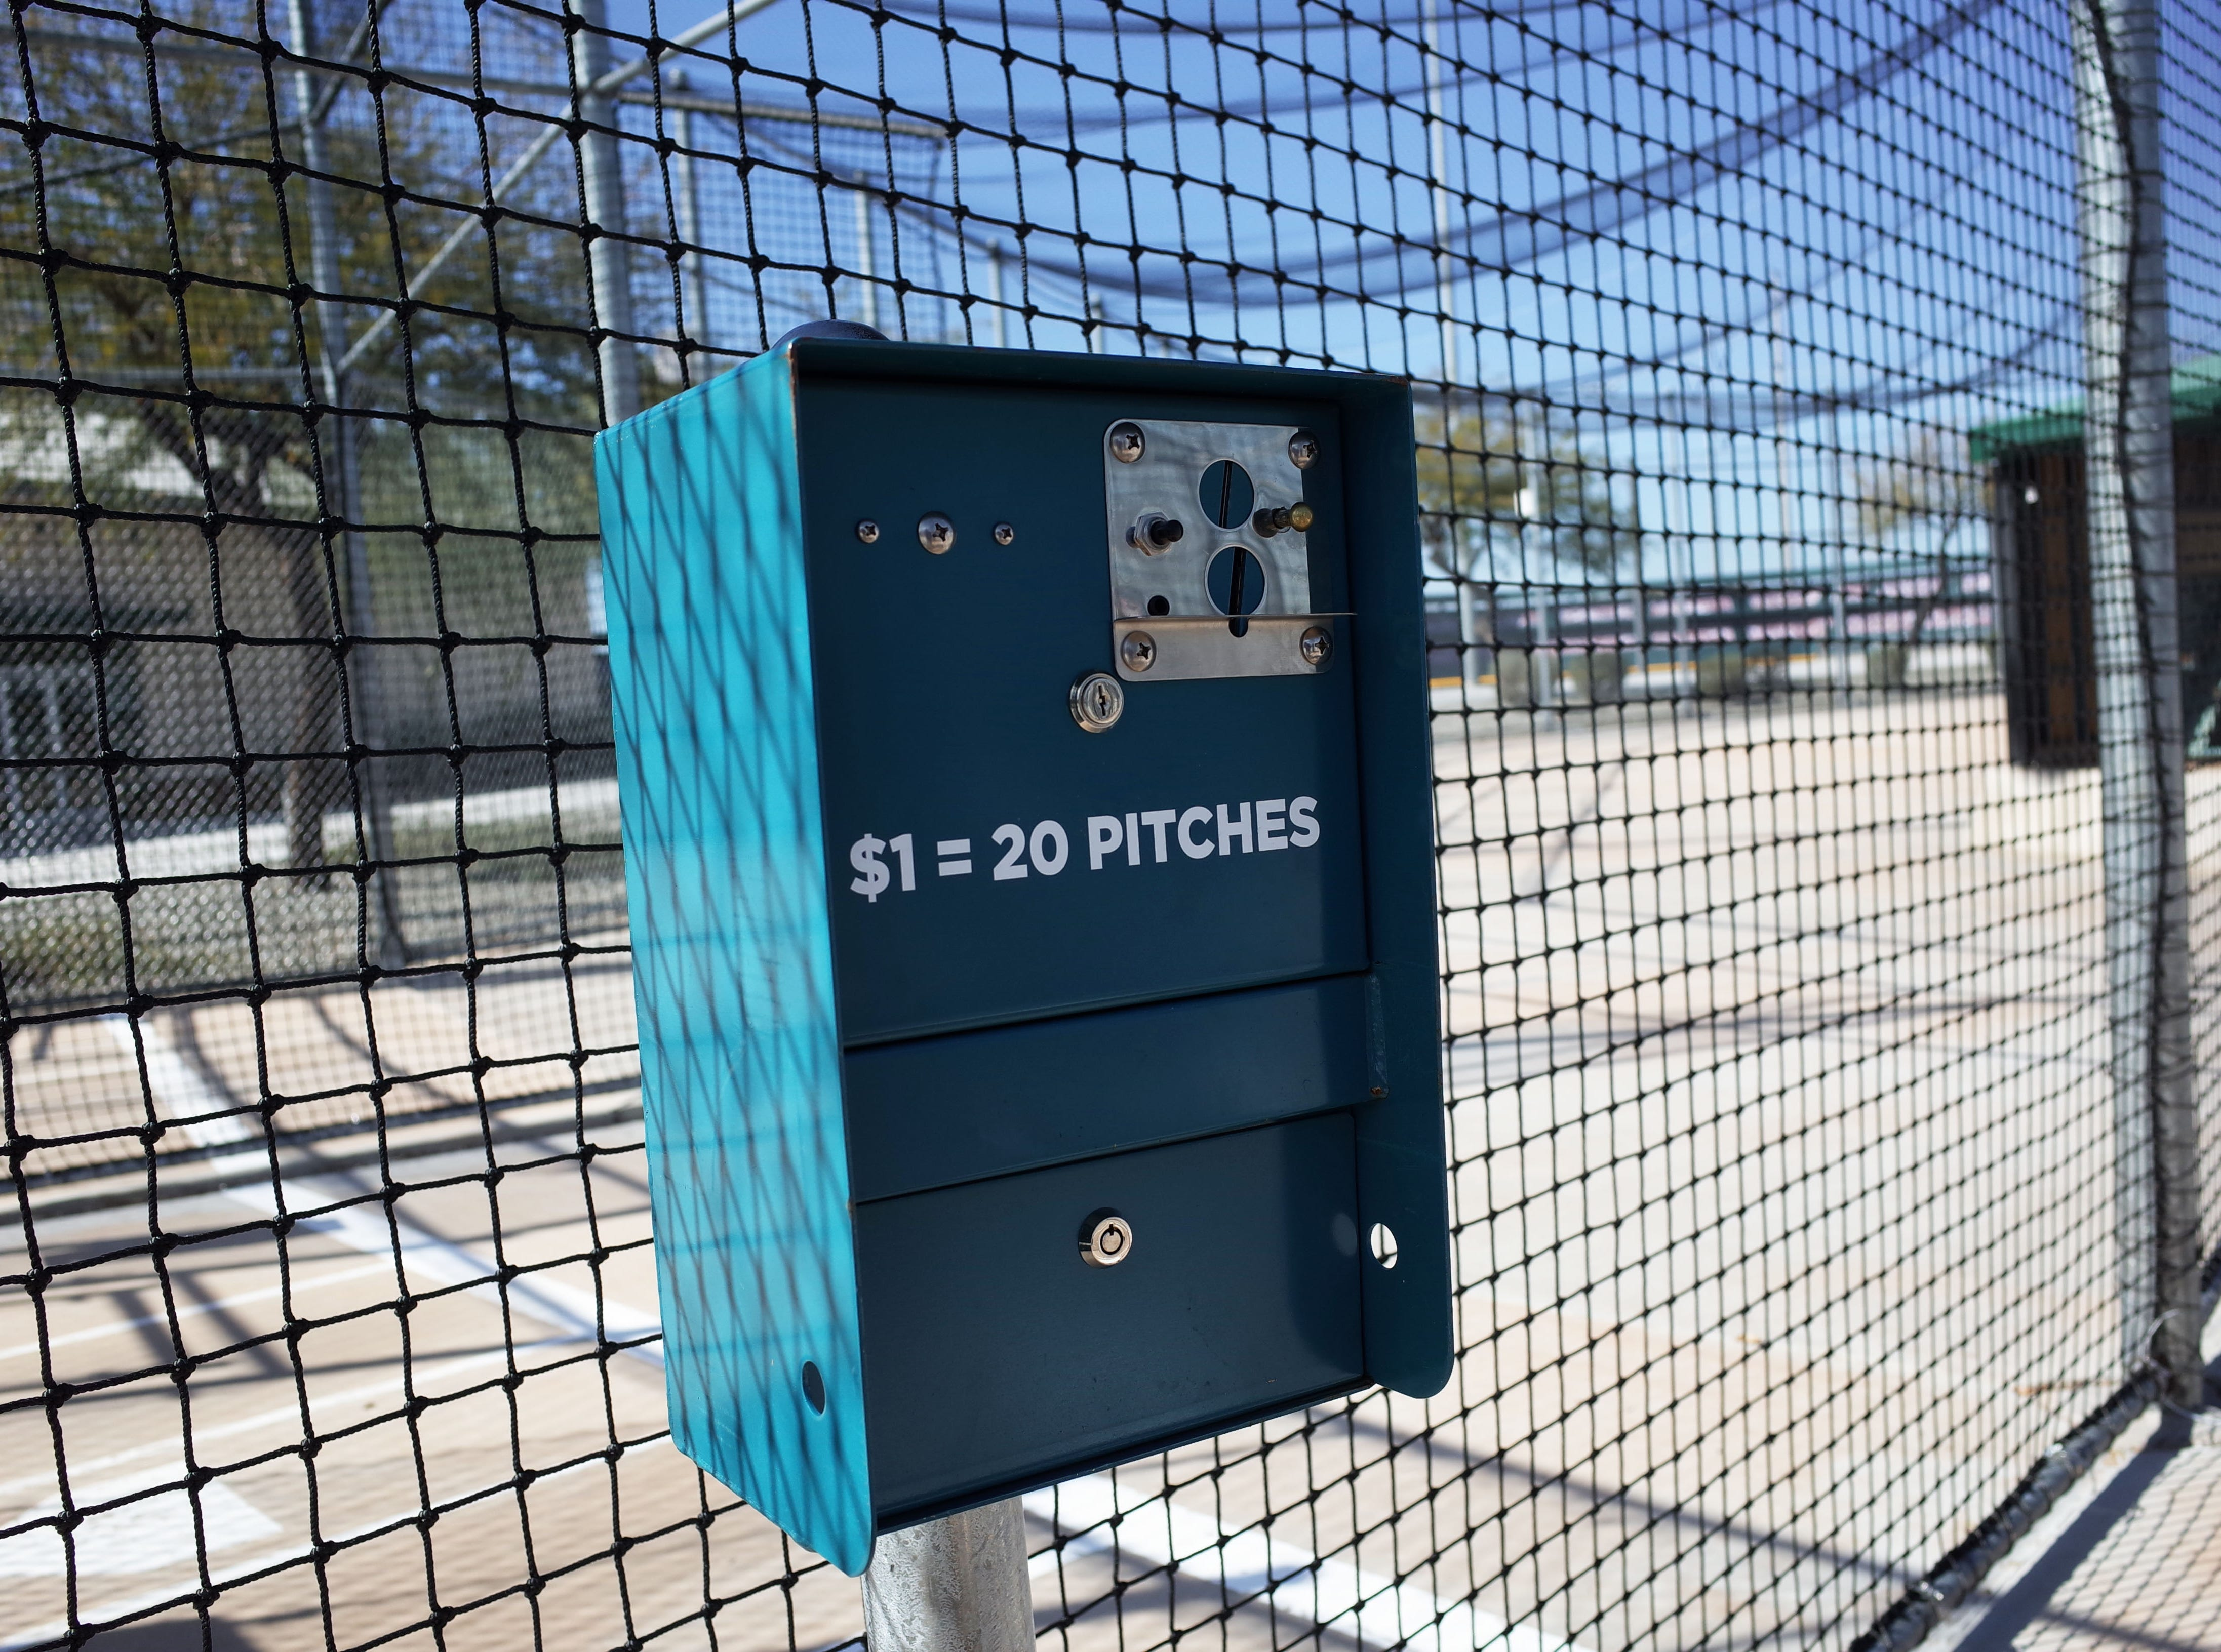 Batting cages are a staple of Cactus Yards. They offer three speeds and softballs in addition to baseballs. Rates are $1 for 20 pitches.